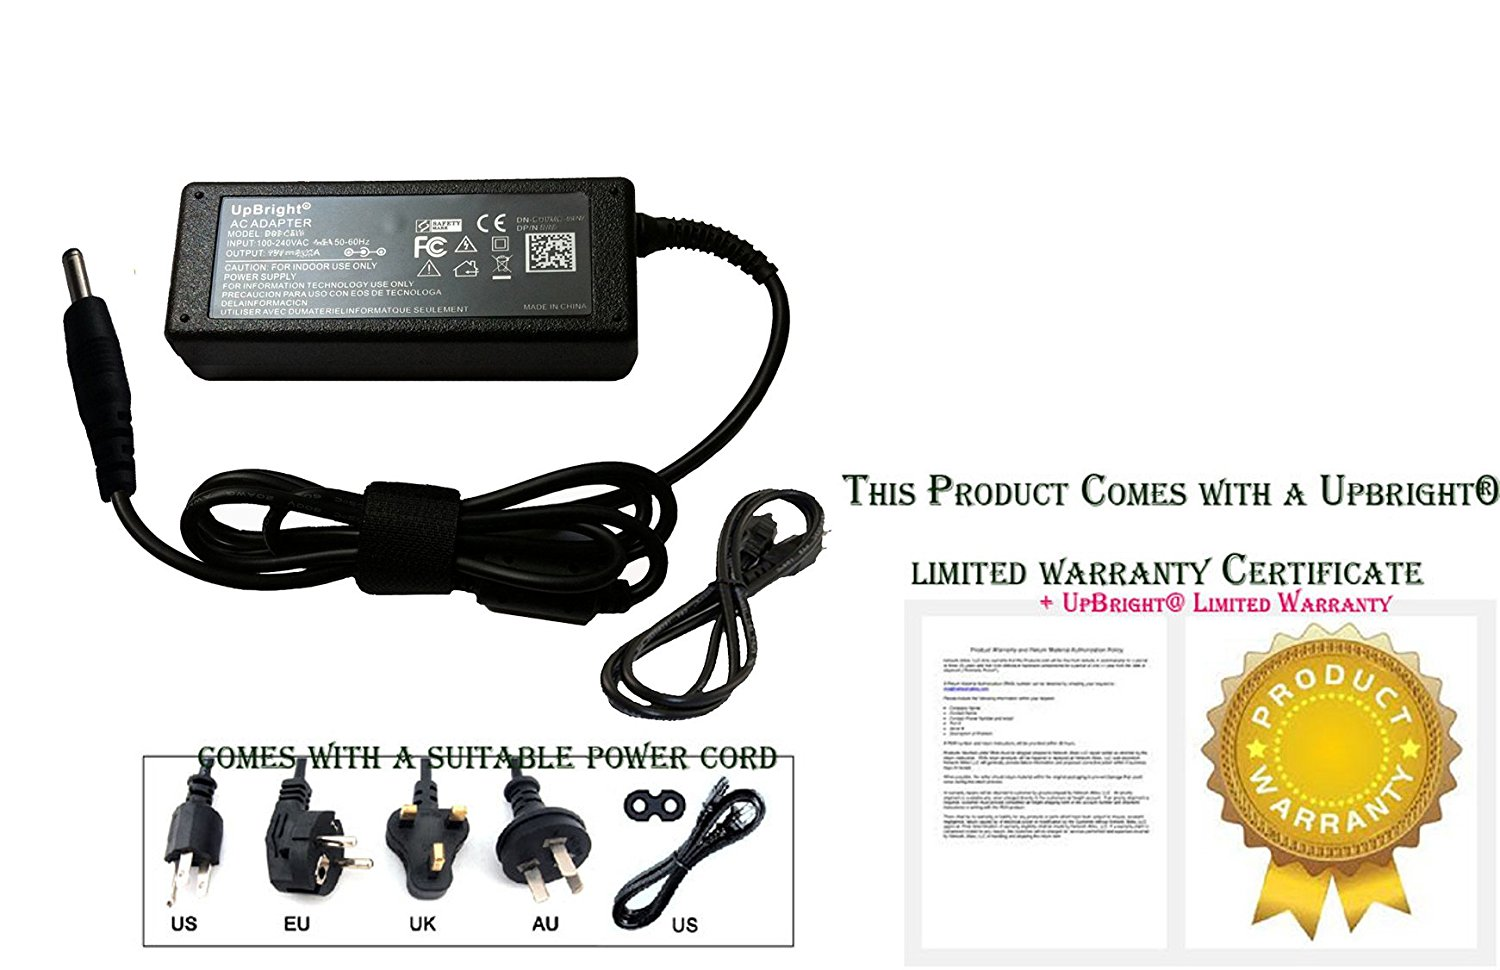 Buy T-Power DC adapter for Bose PM-1 Portable CD Player